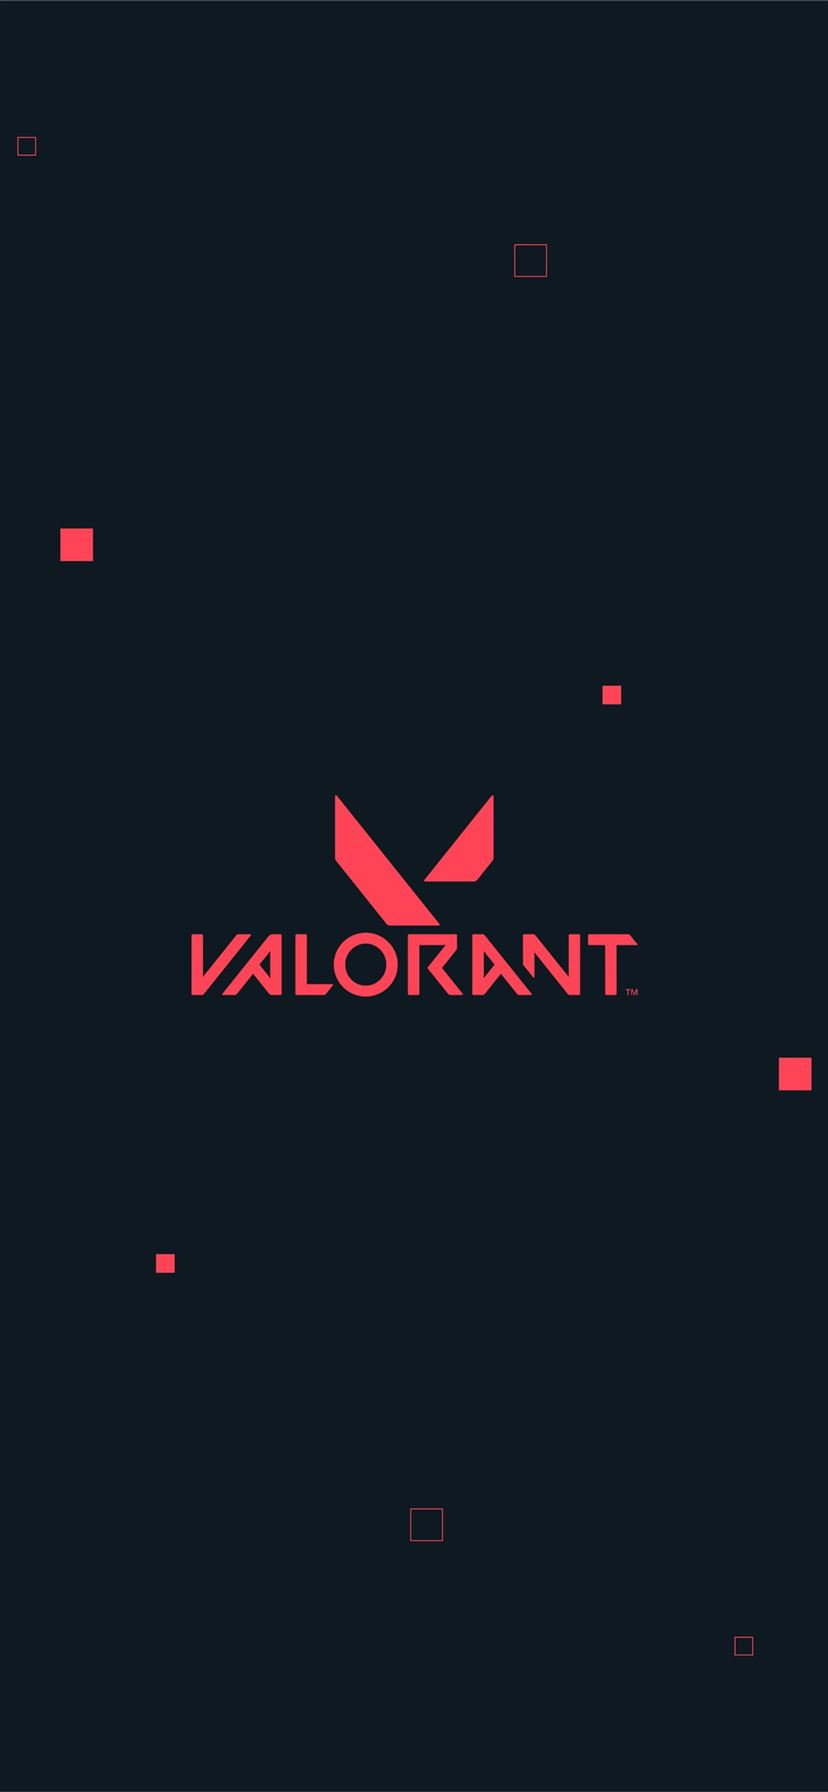 Valorant Logo 4k Iphone 11 Wallpapers Free Download